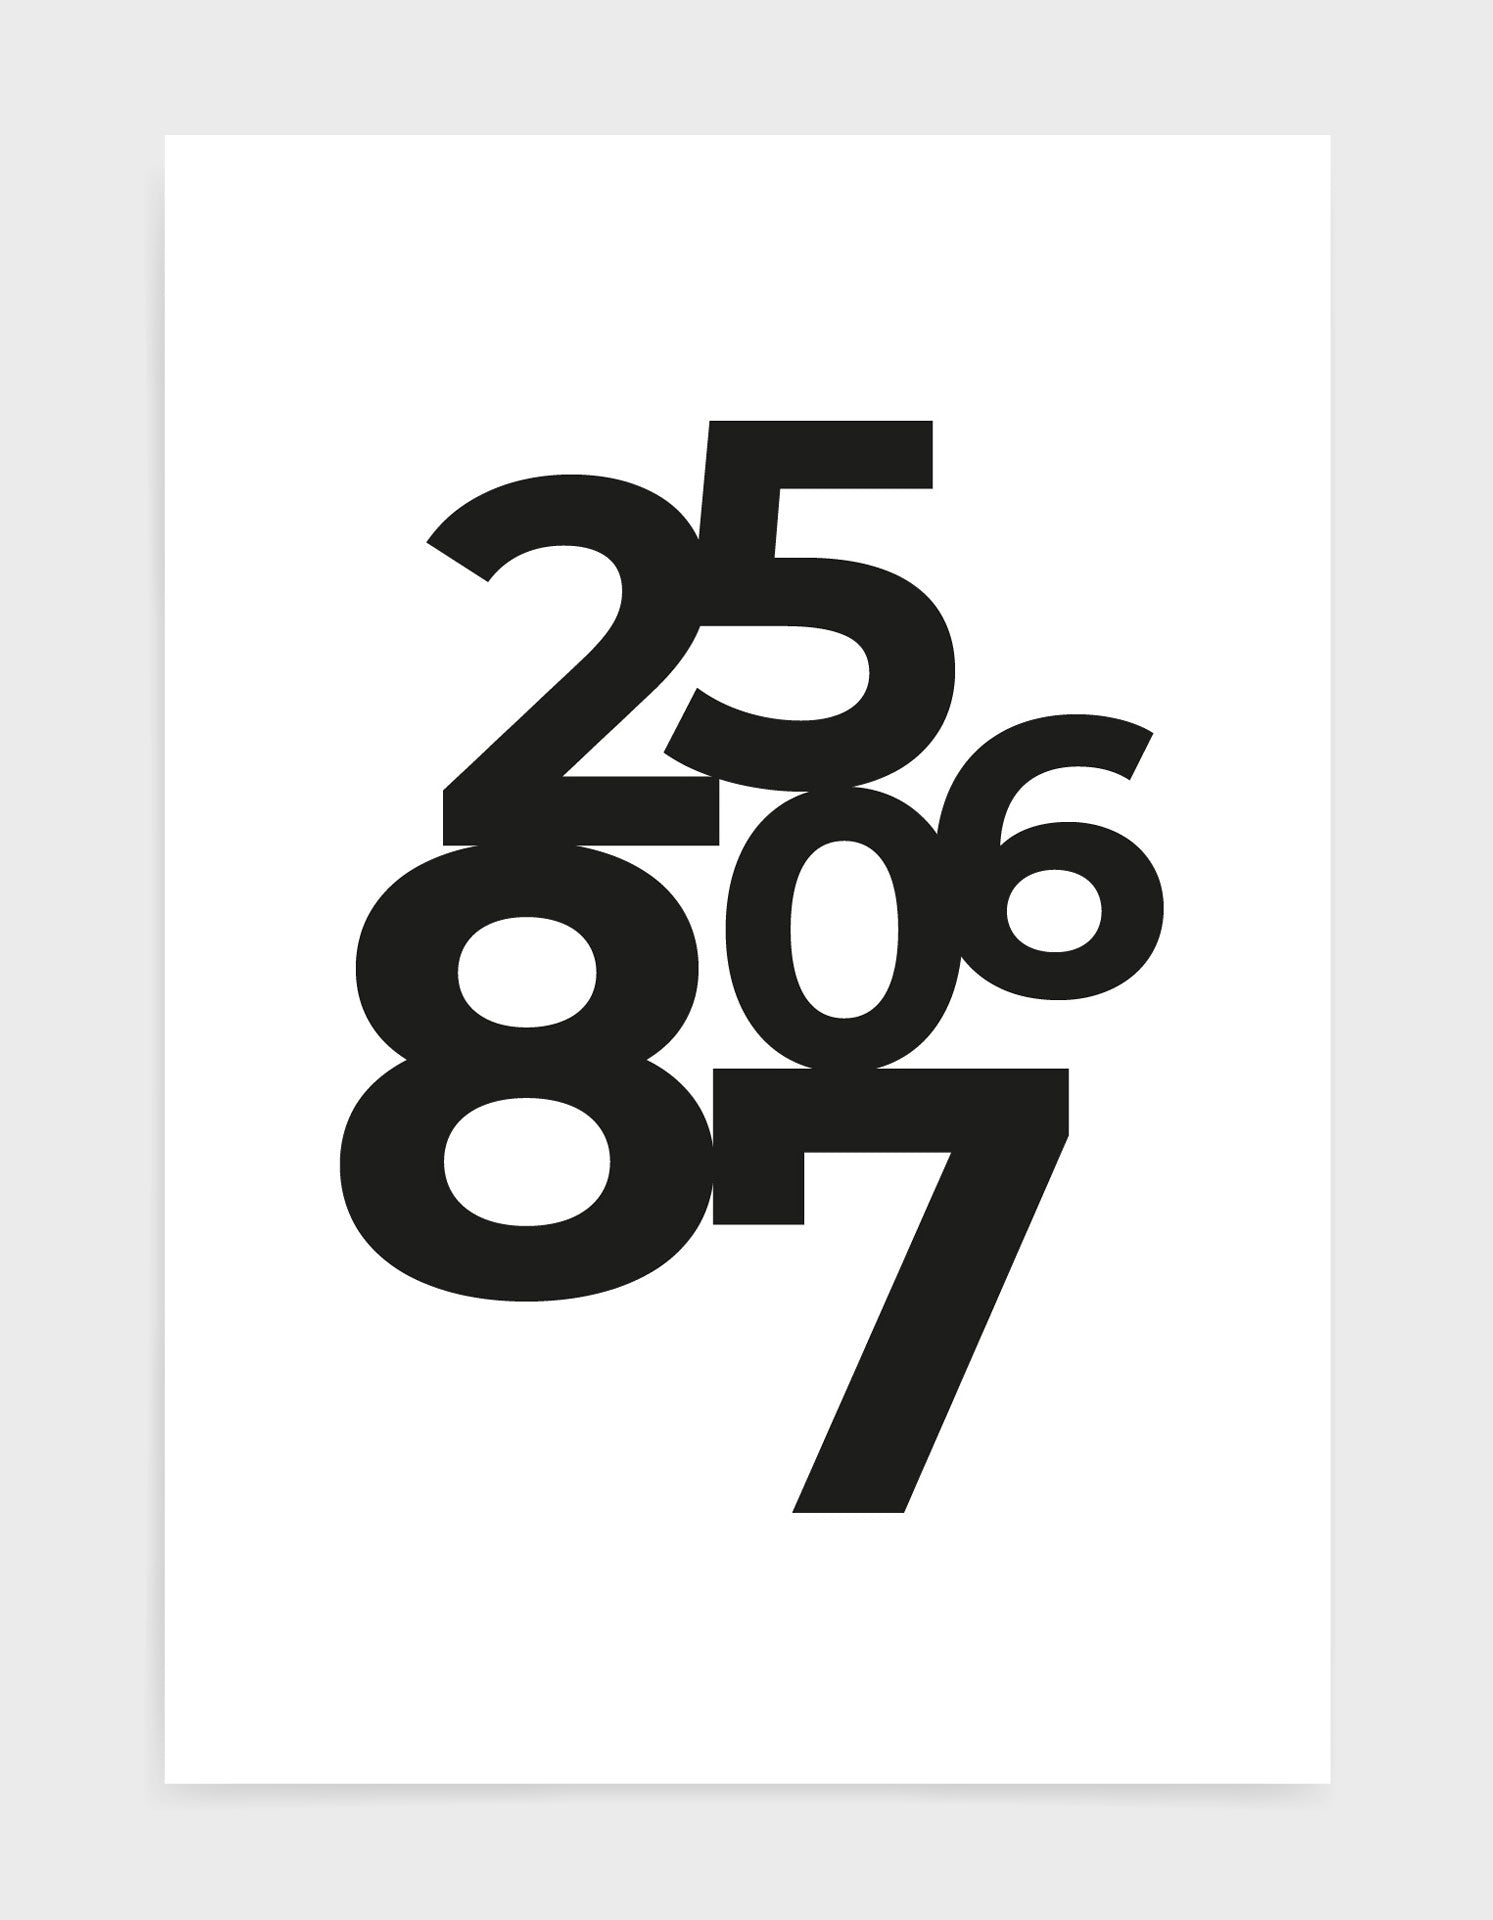 typography art print of personalised date in black text against a white background